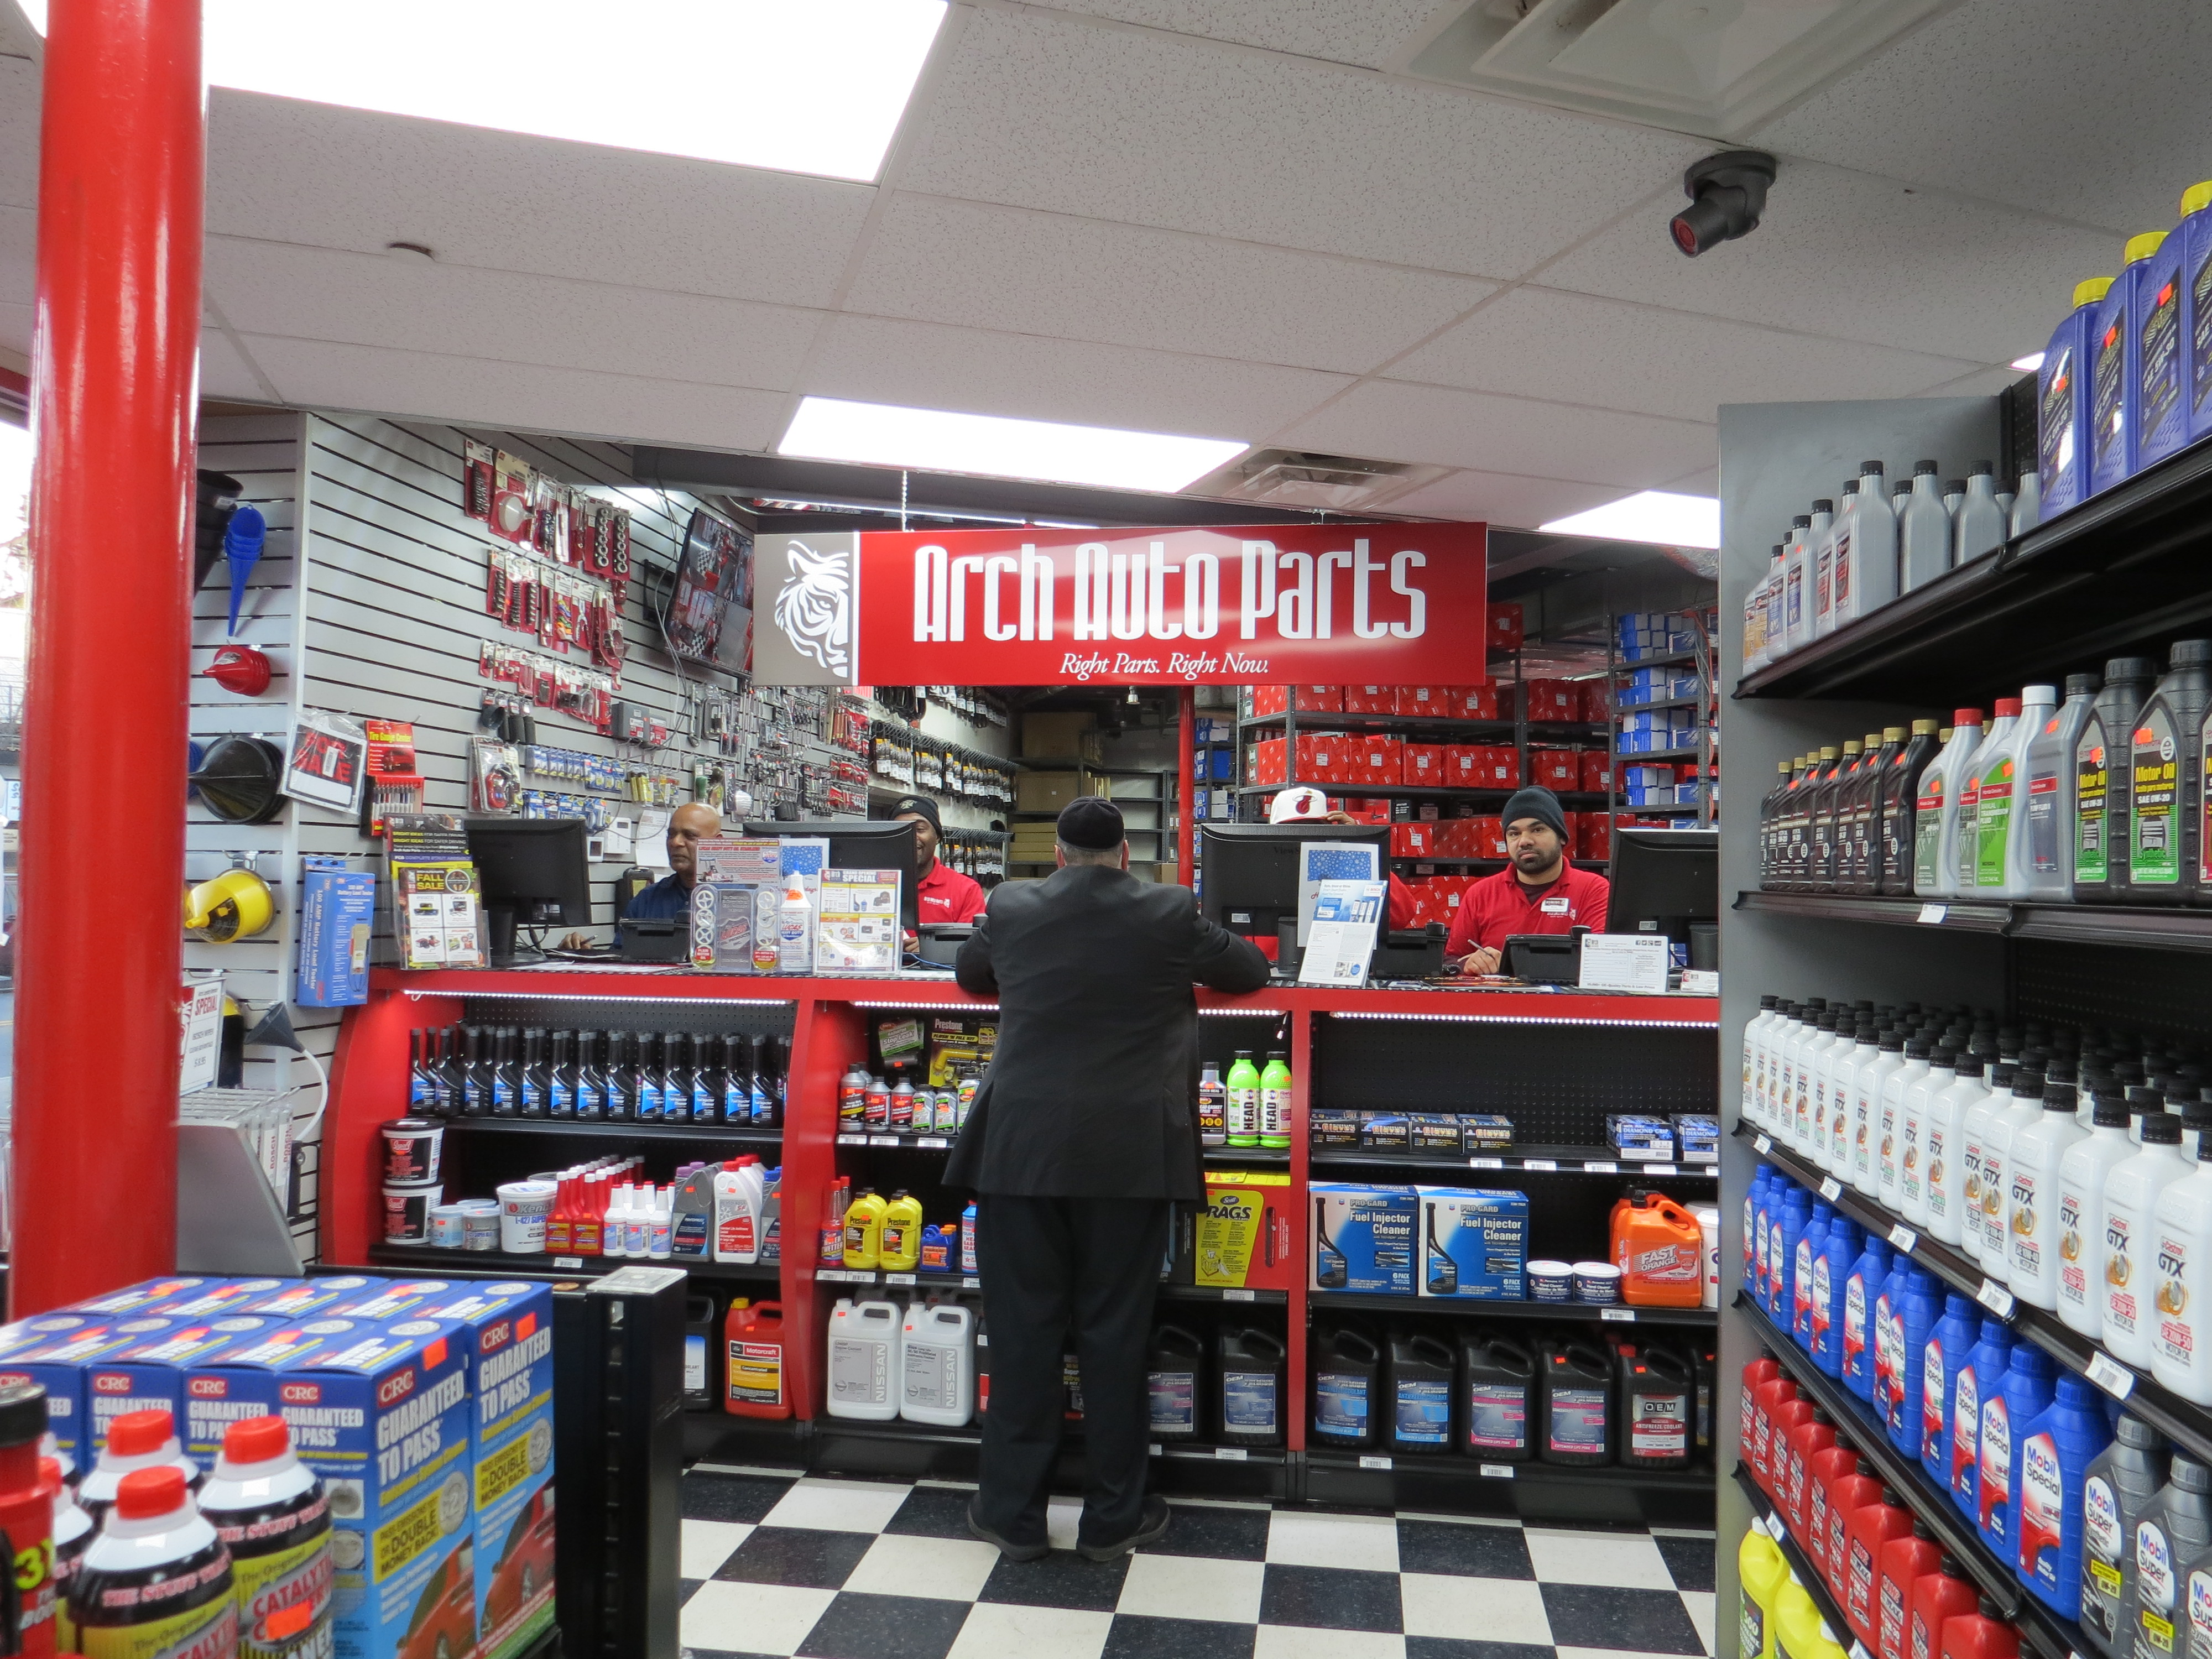 Scenic Arch Auto Parts Opens Th Ny Store Kew Gardens Shoppers Save   With Marvelous Arch Auto Parts Opens With Highquality Discount Auto Parts At Corner Of  Metropolitan Ave And Th Street Kew Gardens Ny With Breathtaking Small Garden Buildings Also Small Garden Sofa In Addition Garden Pitchfork And Whisby Garden Centre As Well As Oxford Gardens Primary School Additionally In The Night Garden Amazon From Prwebcom With   Marvelous Arch Auto Parts Opens Th Ny Store Kew Gardens Shoppers Save   With Breathtaking Arch Auto Parts Opens With Highquality Discount Auto Parts At Corner Of  Metropolitan Ave And Th Street Kew Gardens Ny And Scenic Small Garden Buildings Also Small Garden Sofa In Addition Garden Pitchfork From Prwebcom